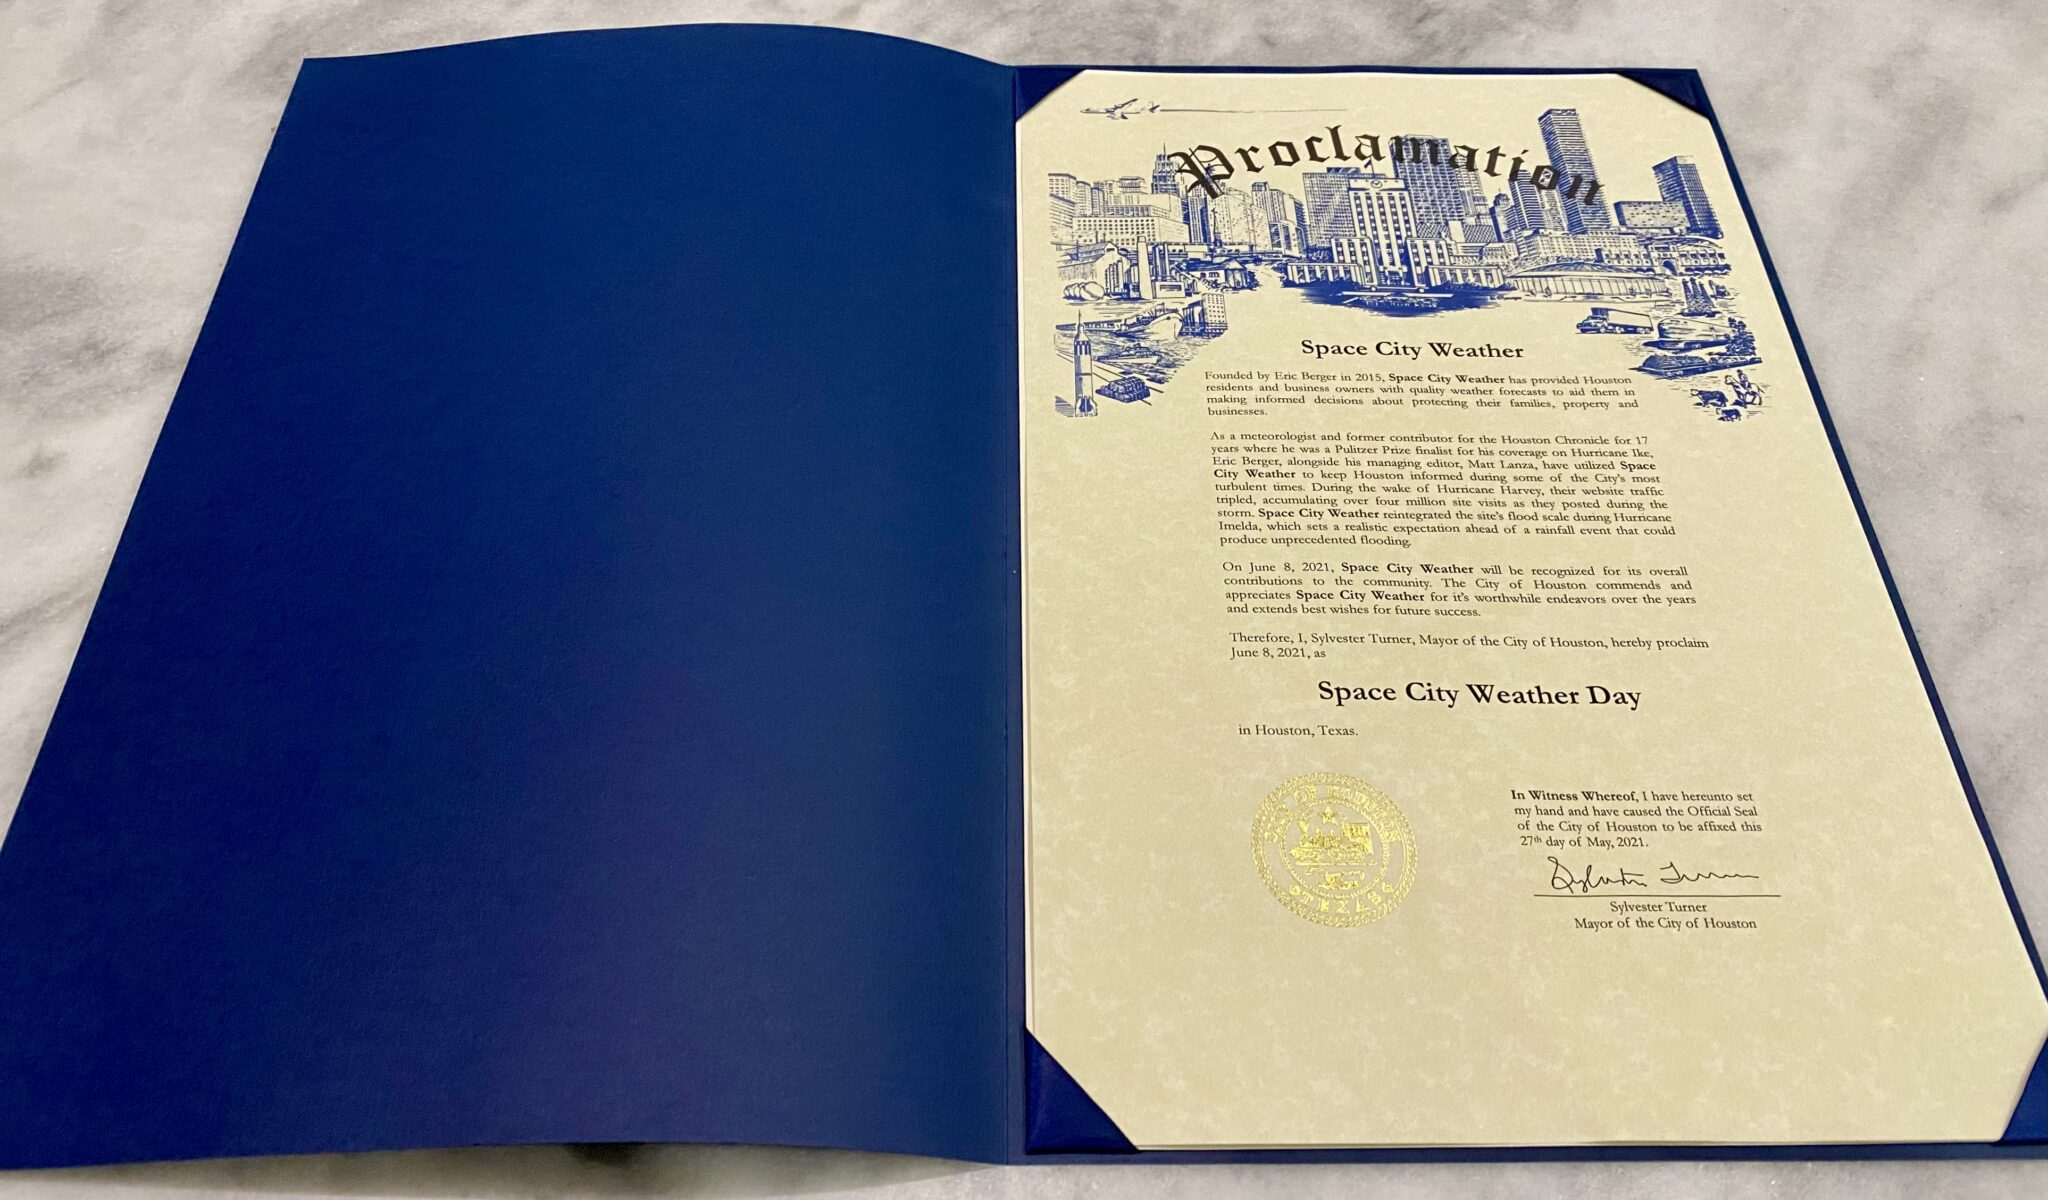 Today is Space City Weather Day in Houston. Yes, really.